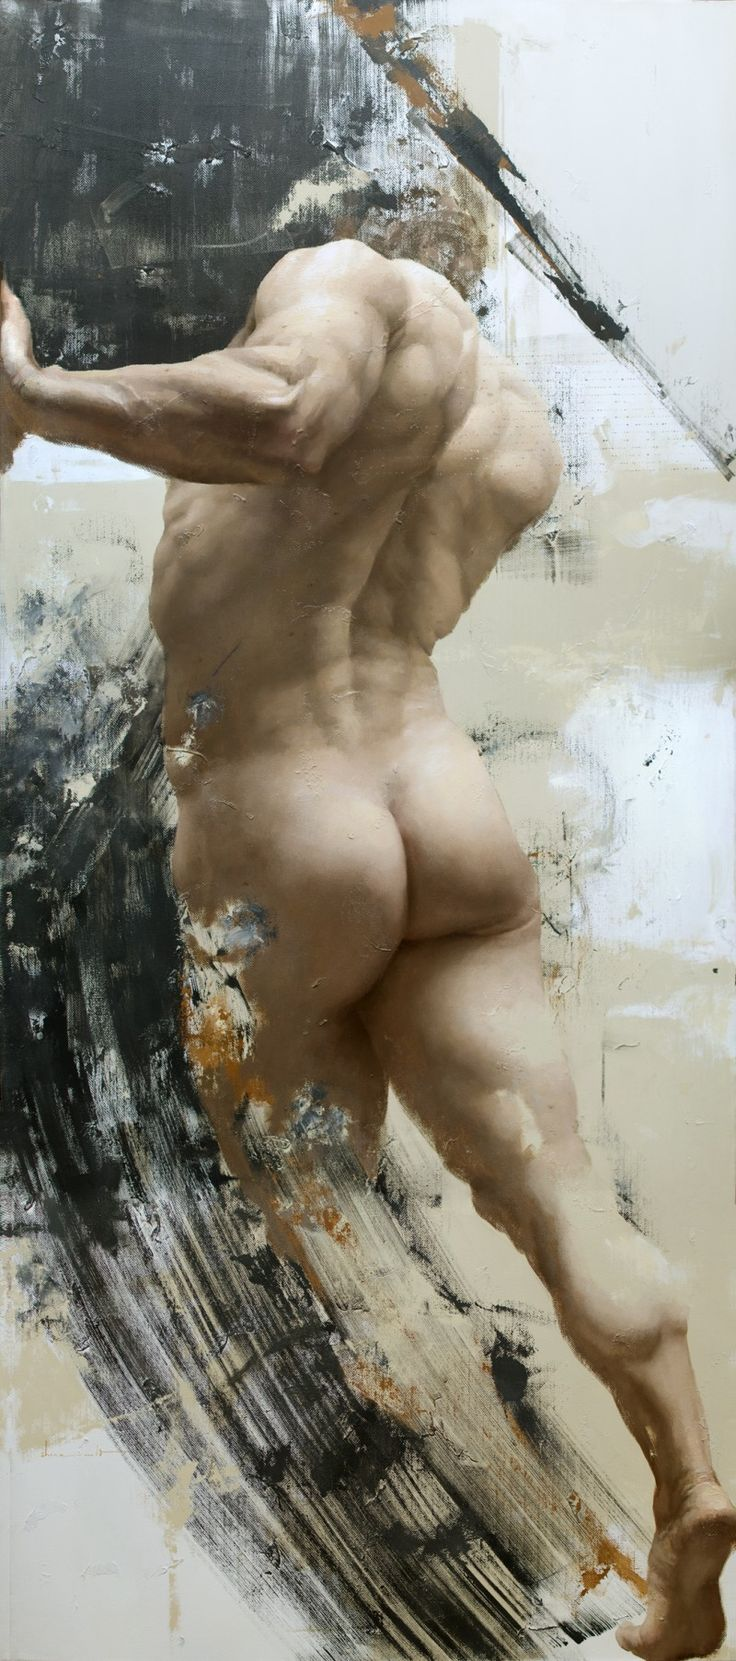 Shane Wolf Thrust  Oil on Canvas 39 x 88 inches